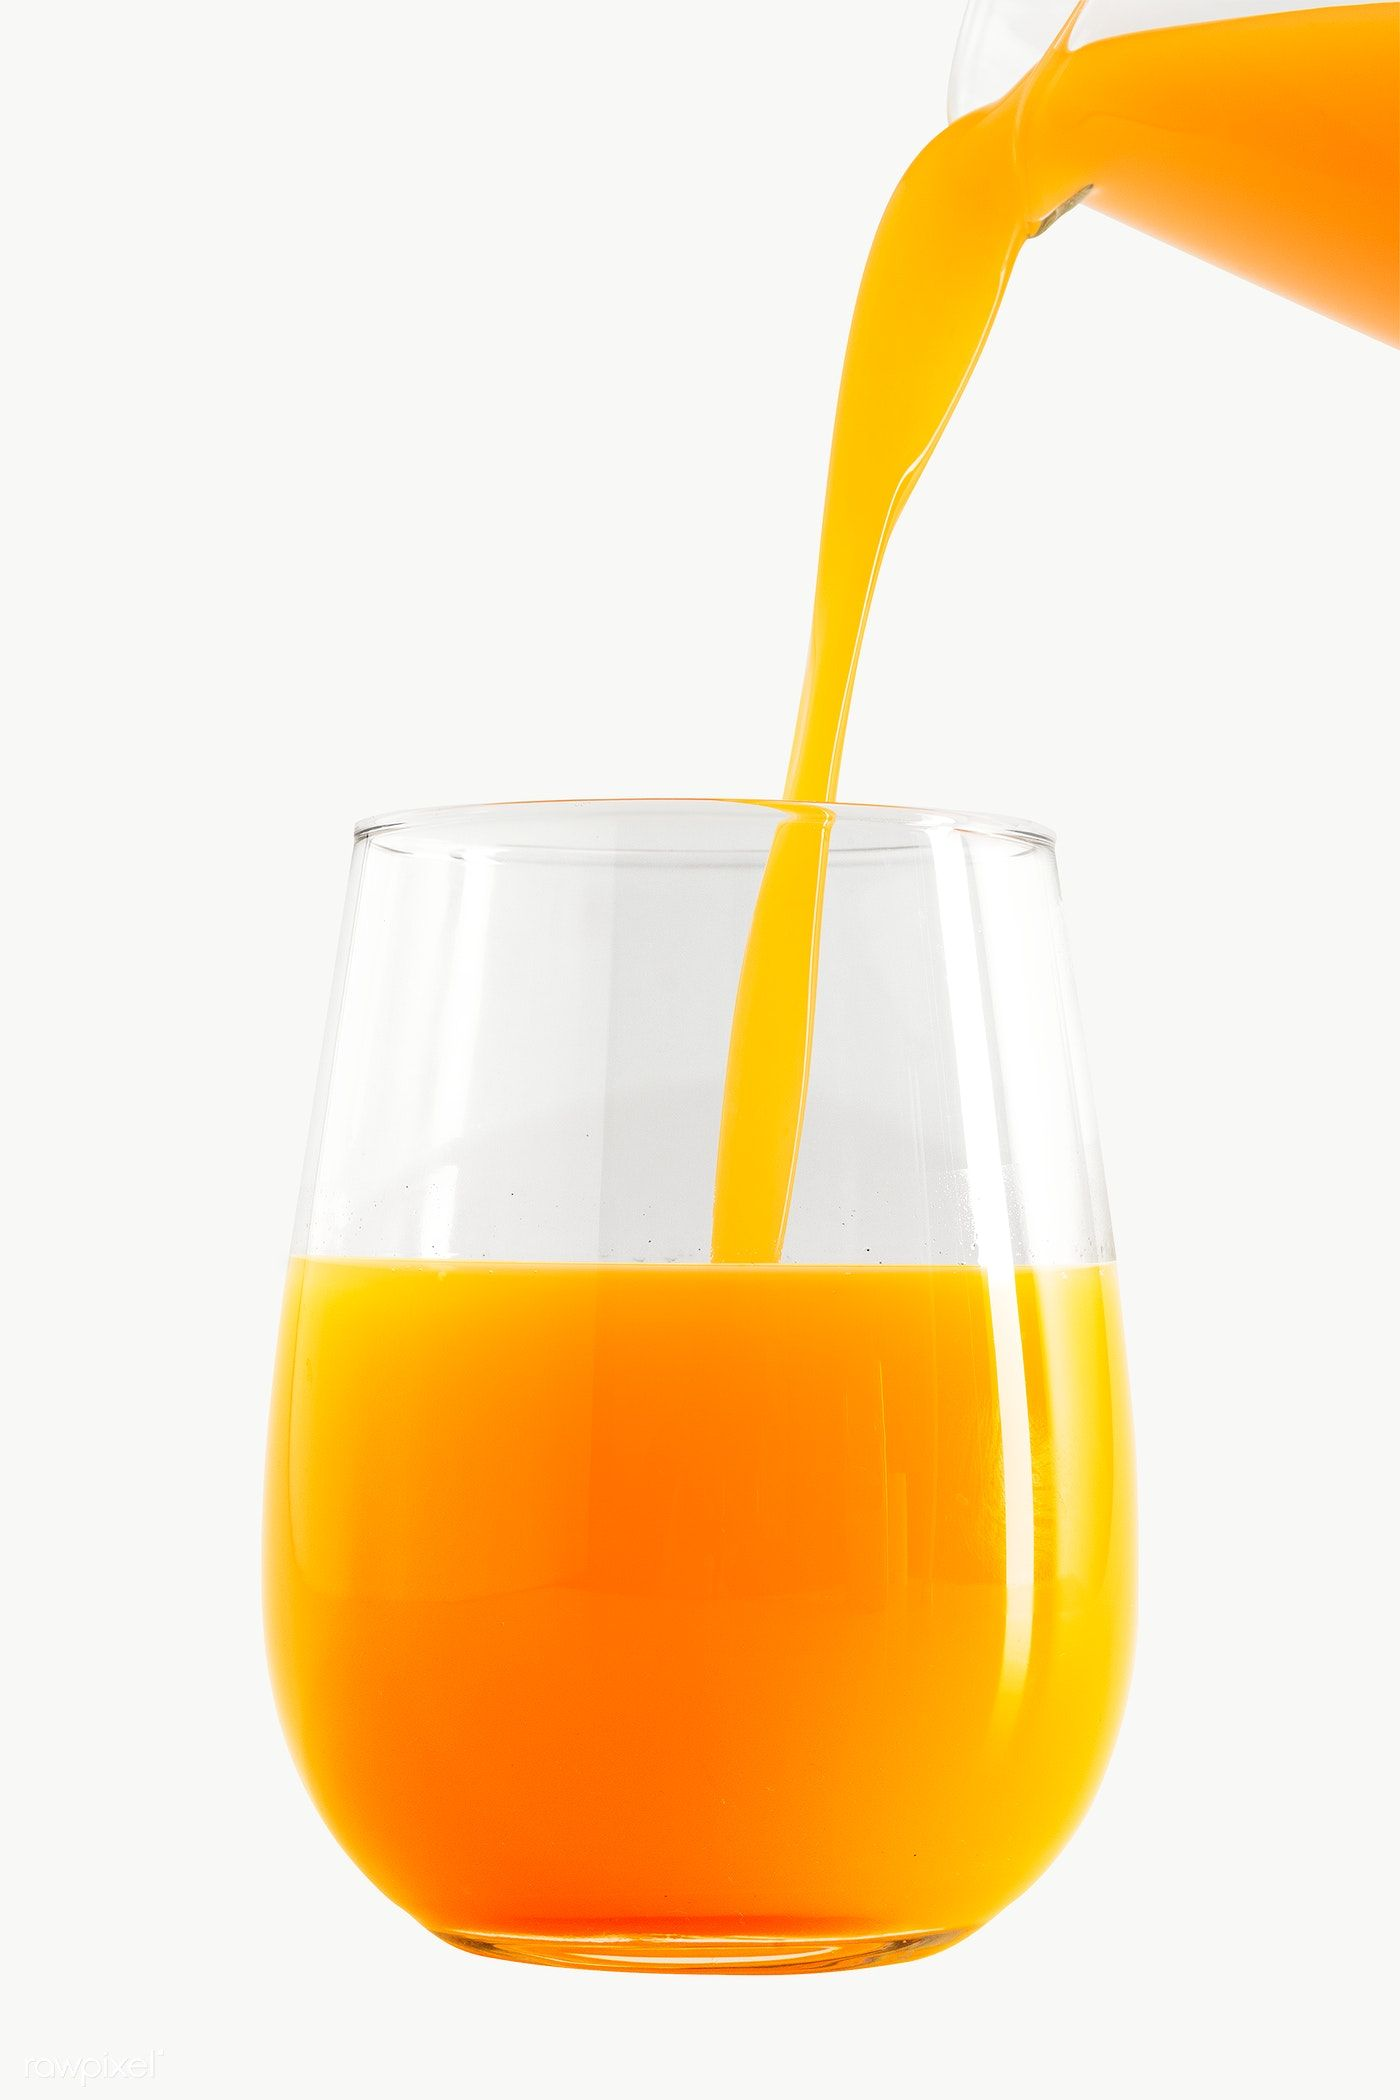 Pouring Fresh Organic Orange Juice To A Glass Design Element Free Image By Rawpixel Com Teddy Rawpixel Organic Orange Juice Organic Orange Orange Juice